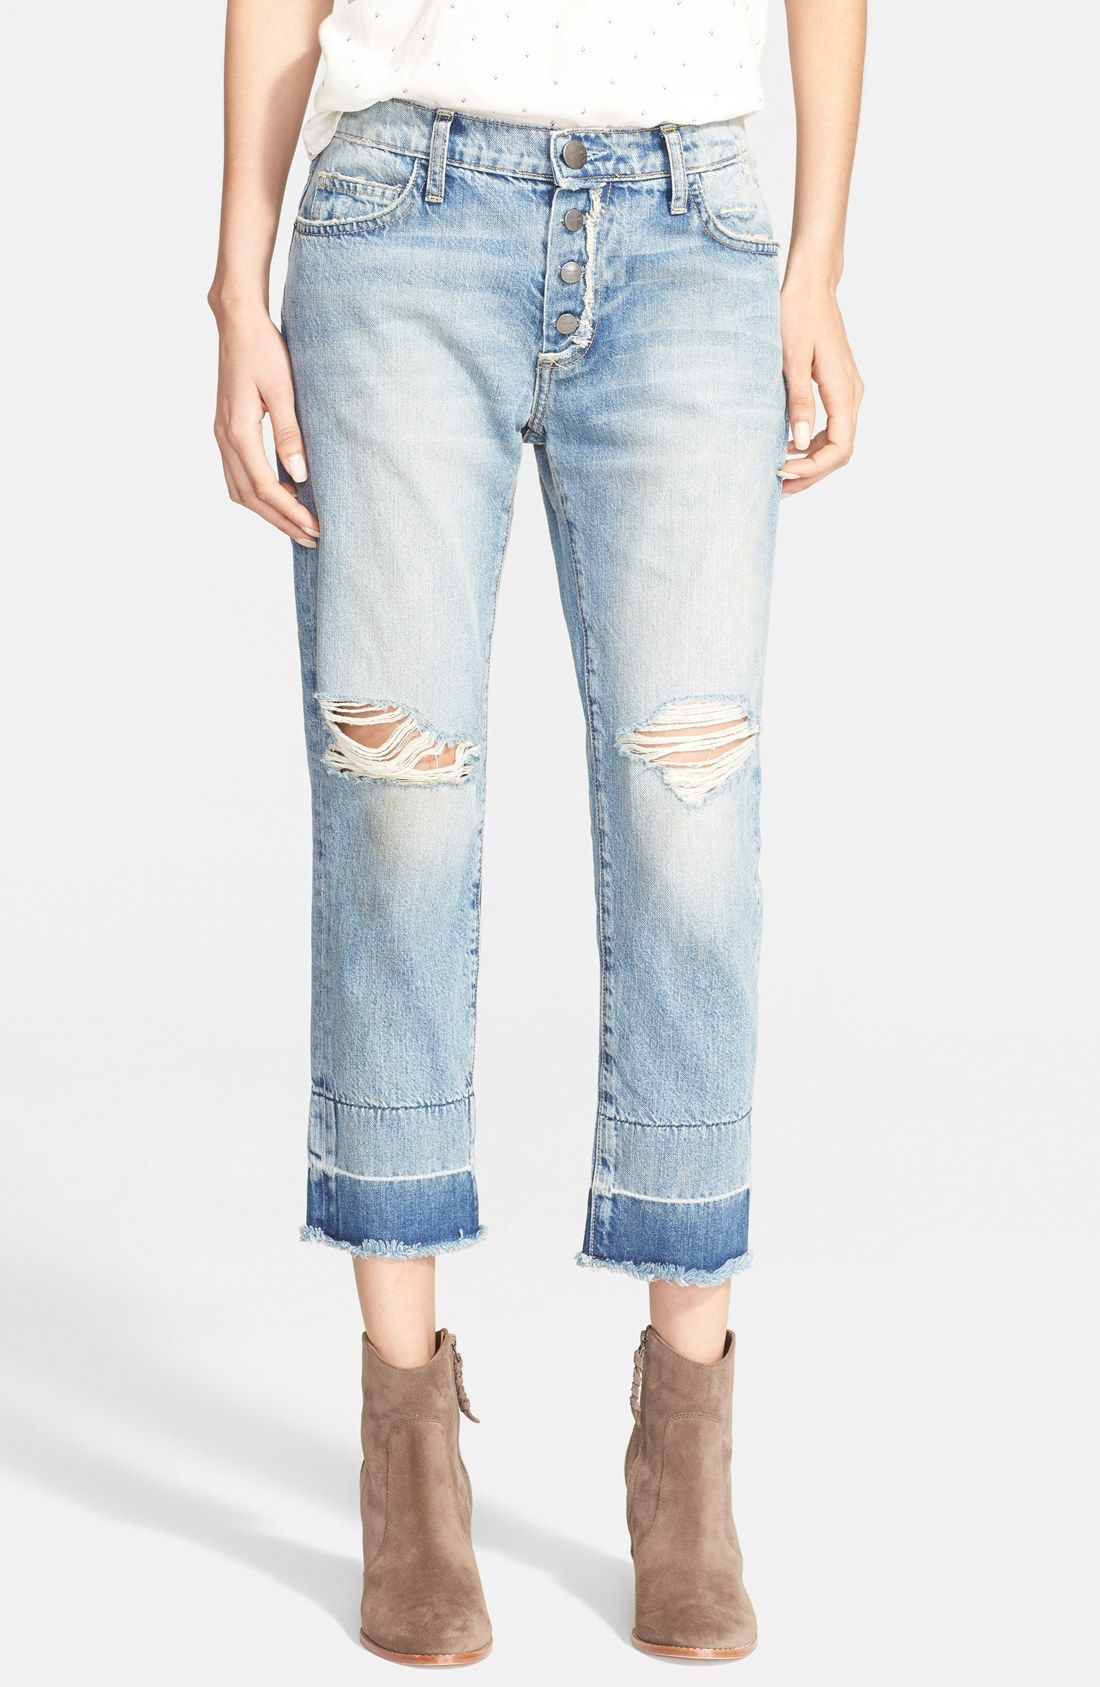 skinny cropped jeans - Blue Current Elliott OfQFSiTR3s